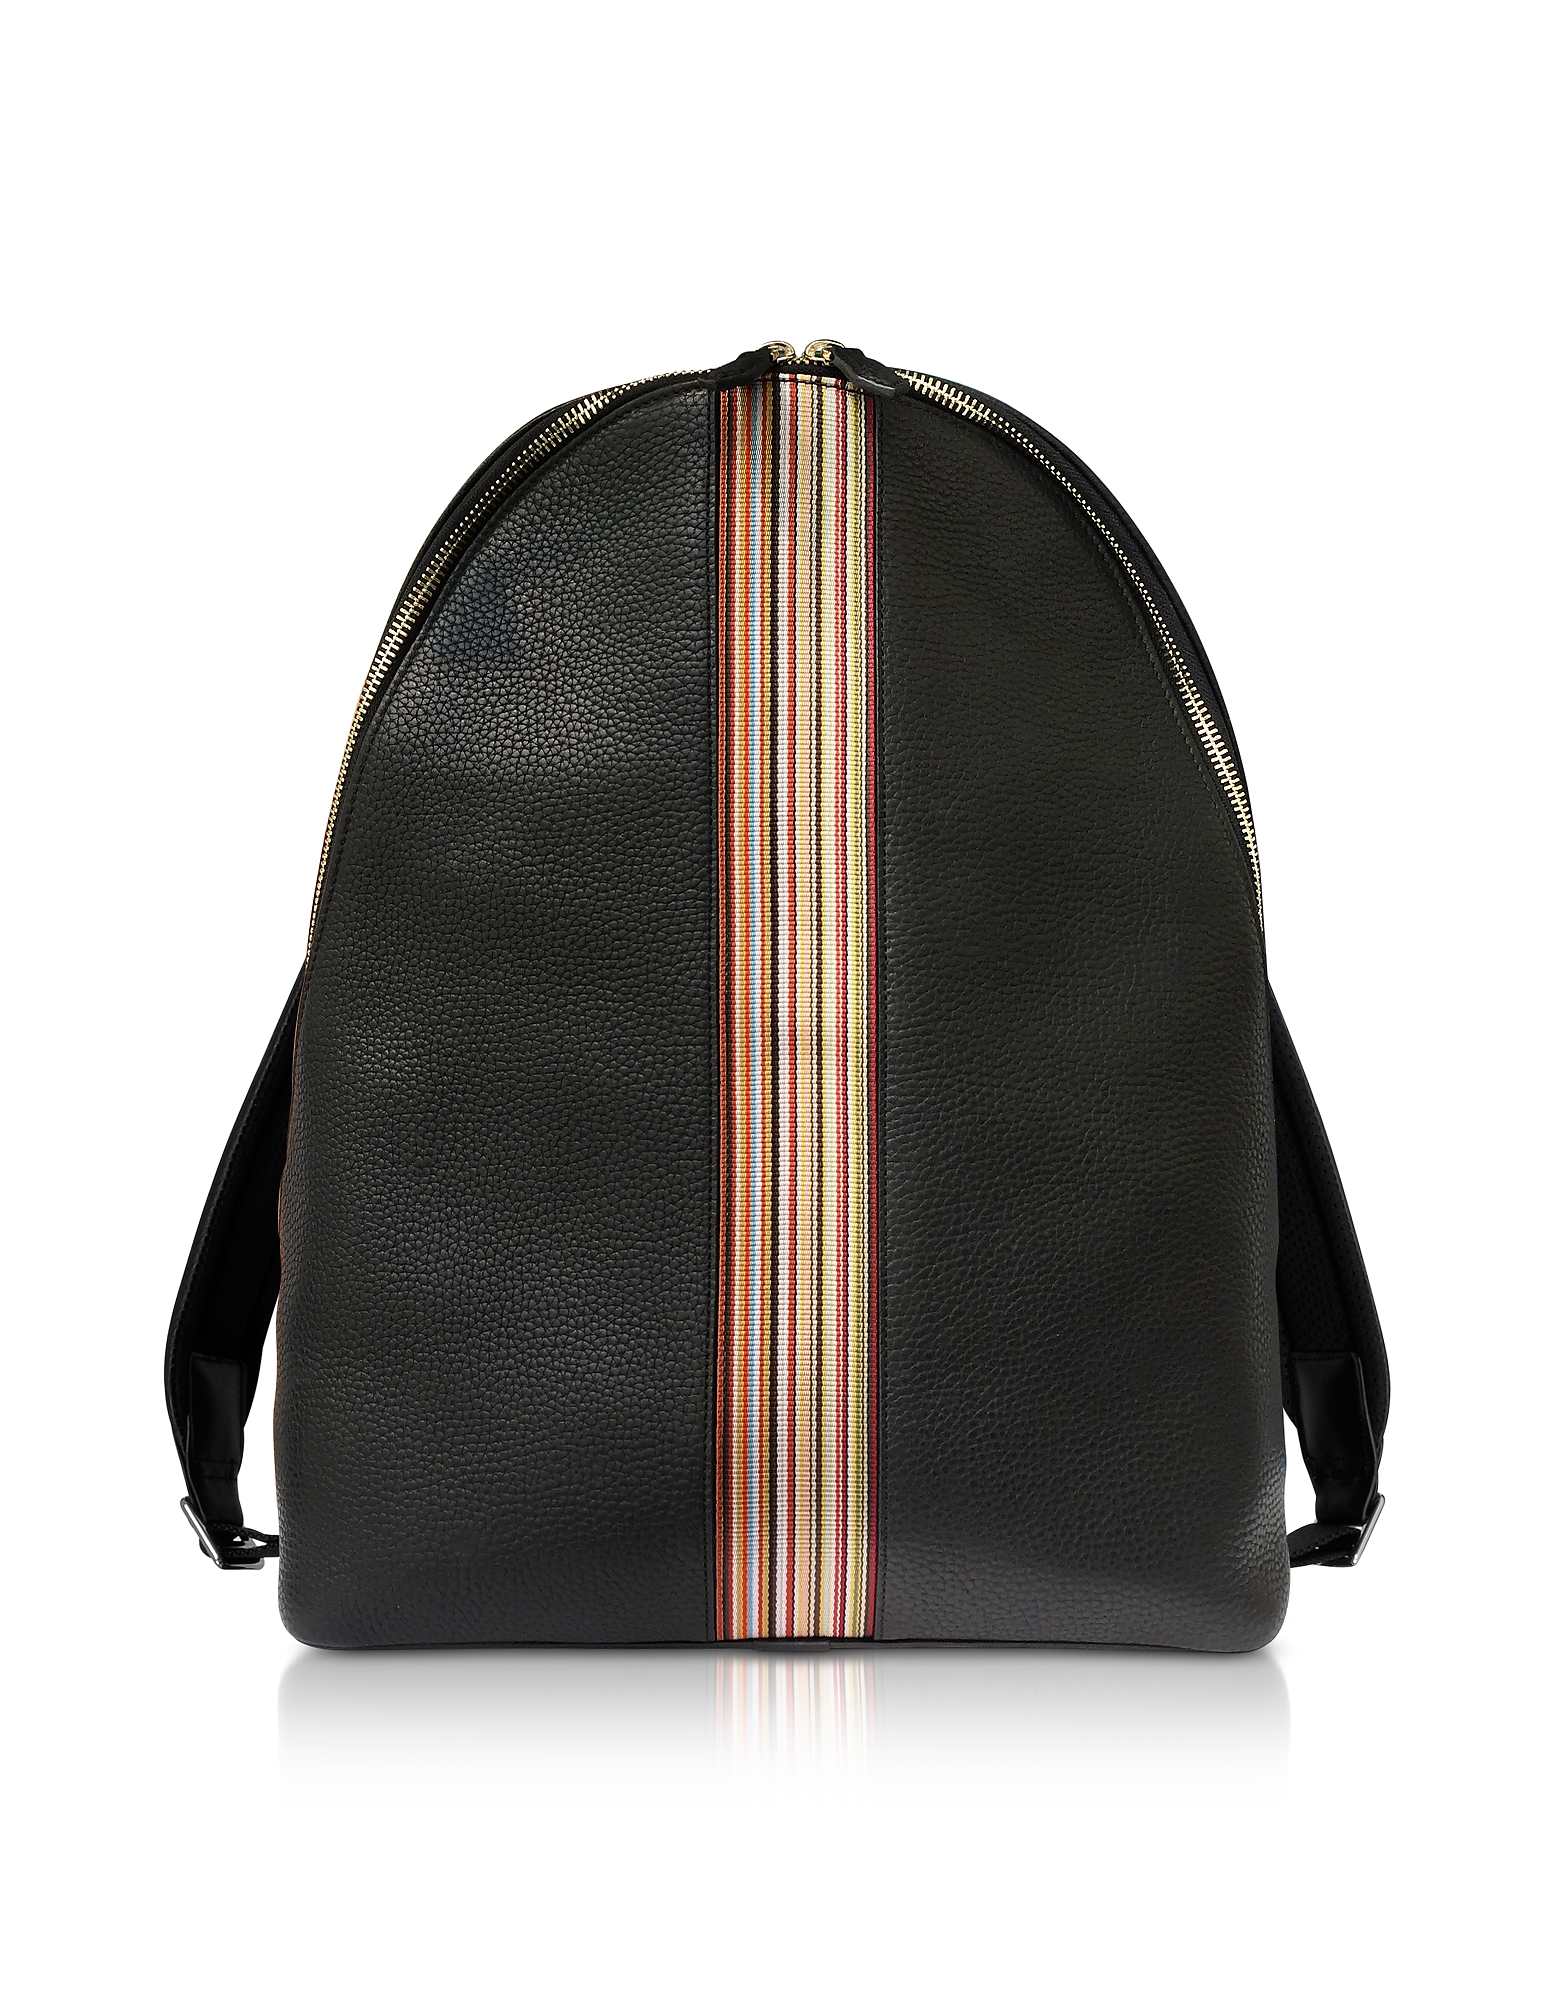 Paul Smith Backpacks, Black Leather New Stripe Print Backpack